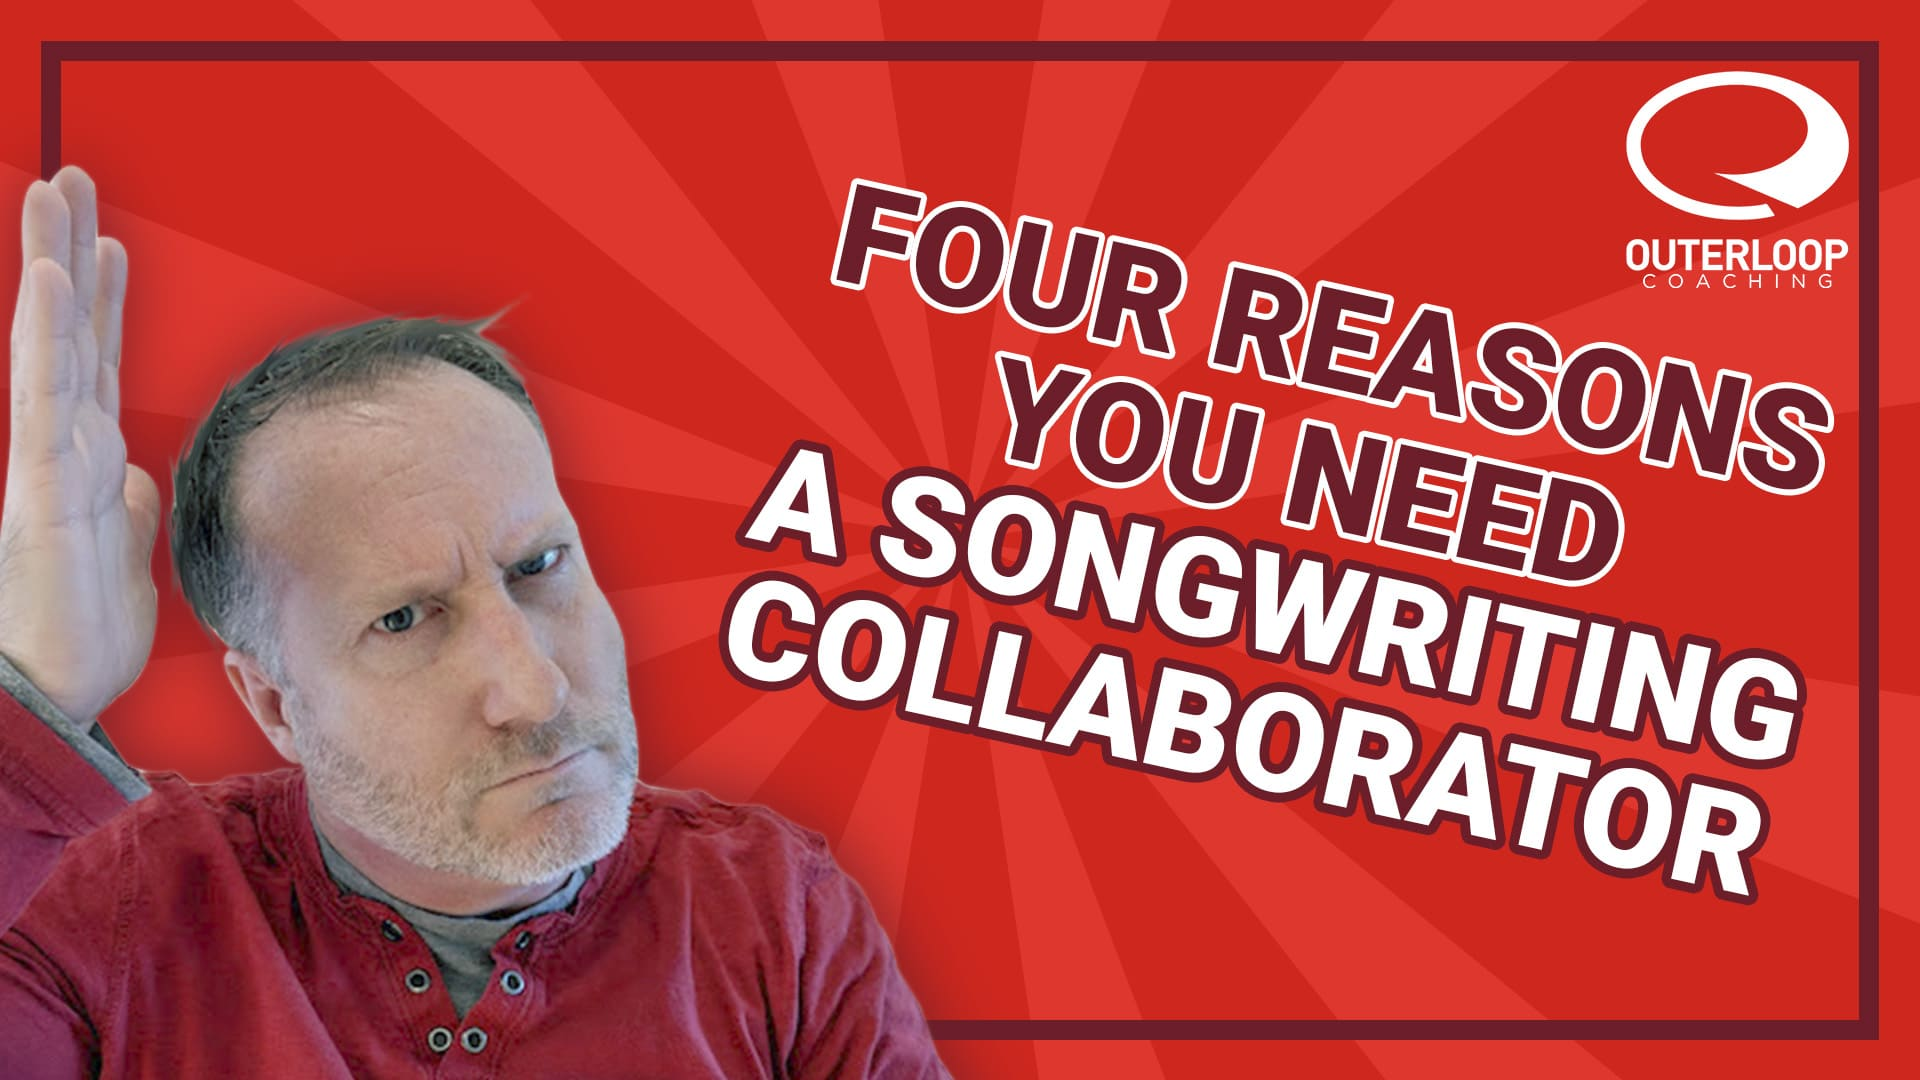 Songwriting Collaborator – Do You Need One?